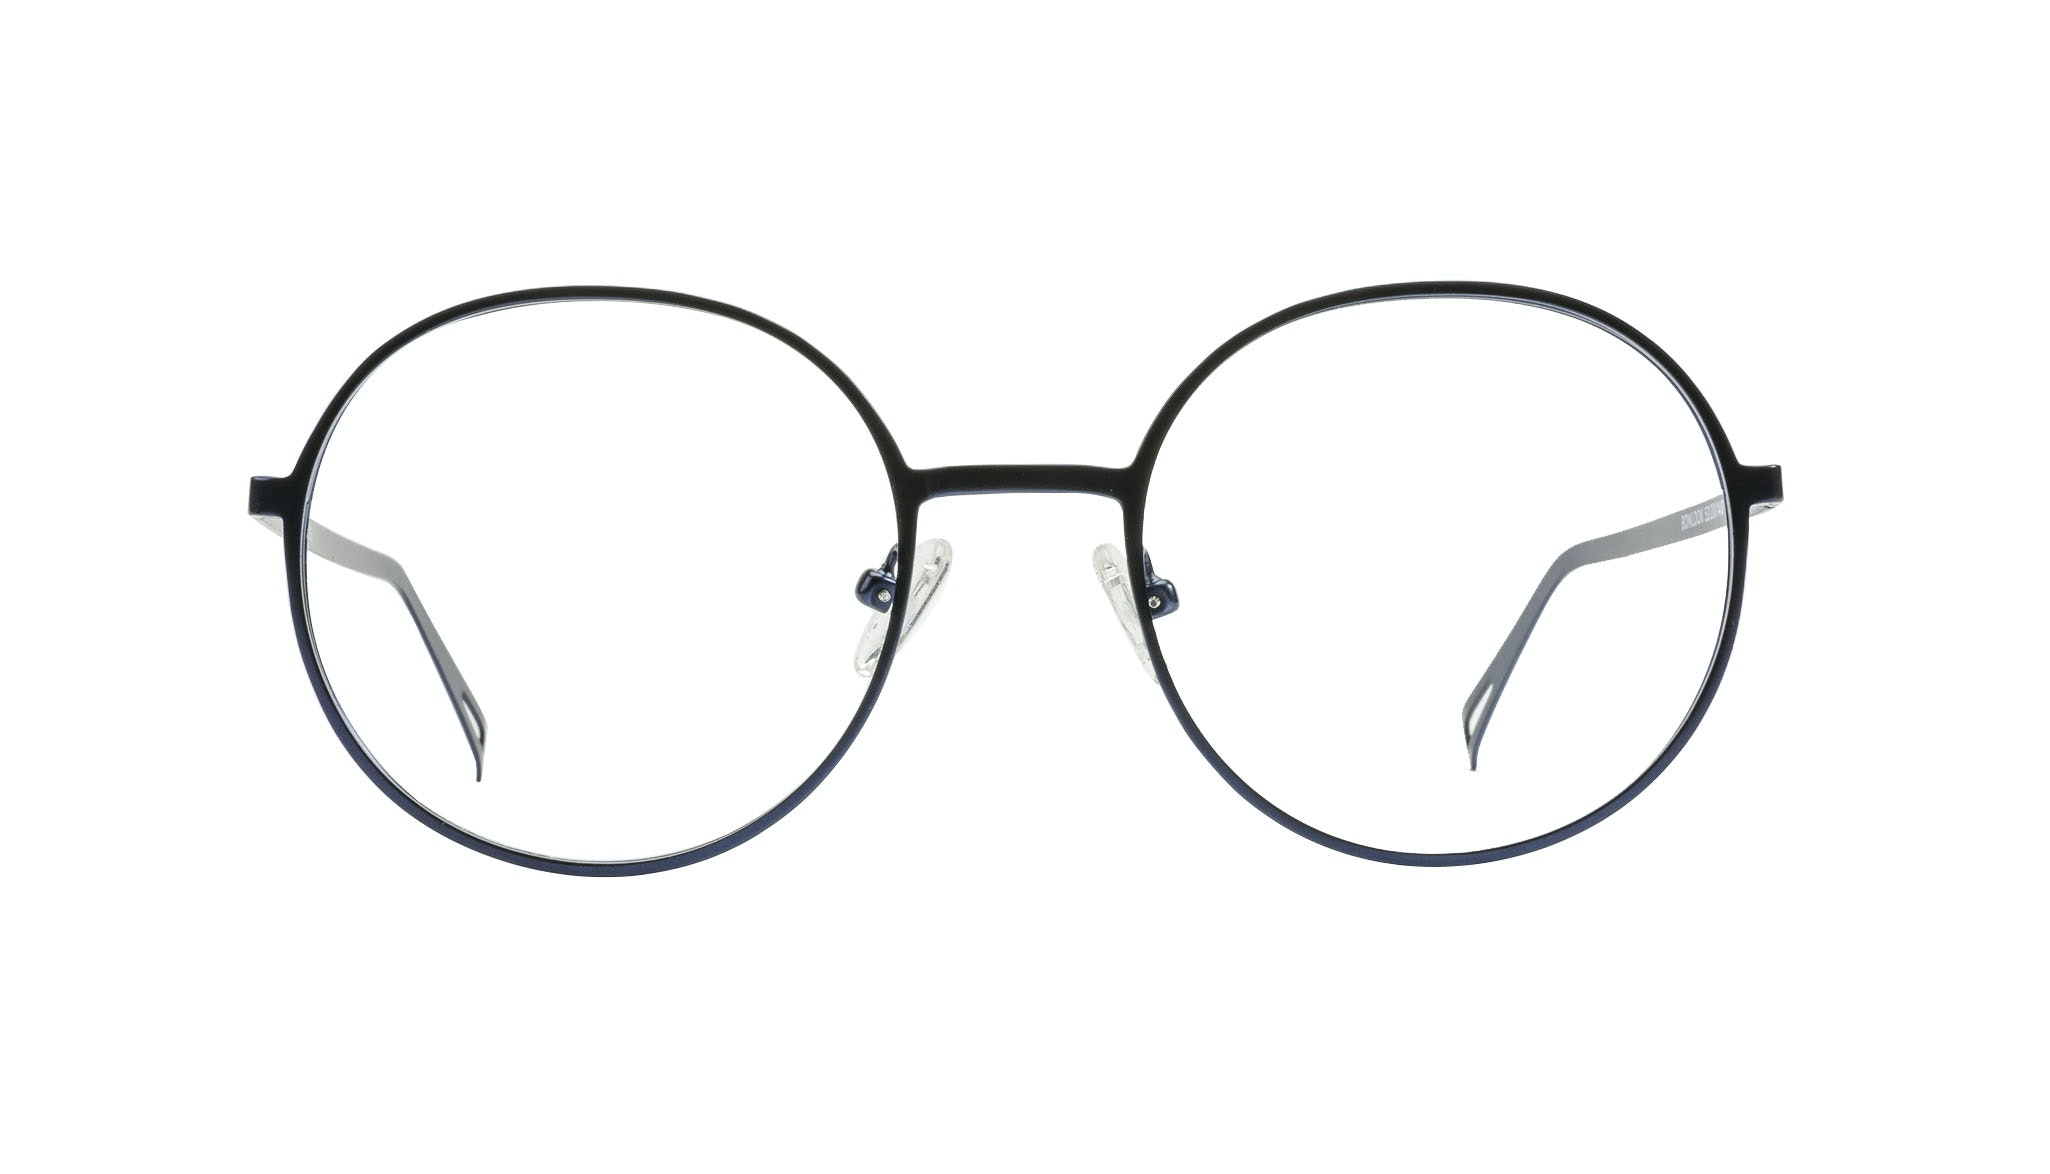 Affordable Fashion Glasses Round Eyeglasses Men Varna Navy